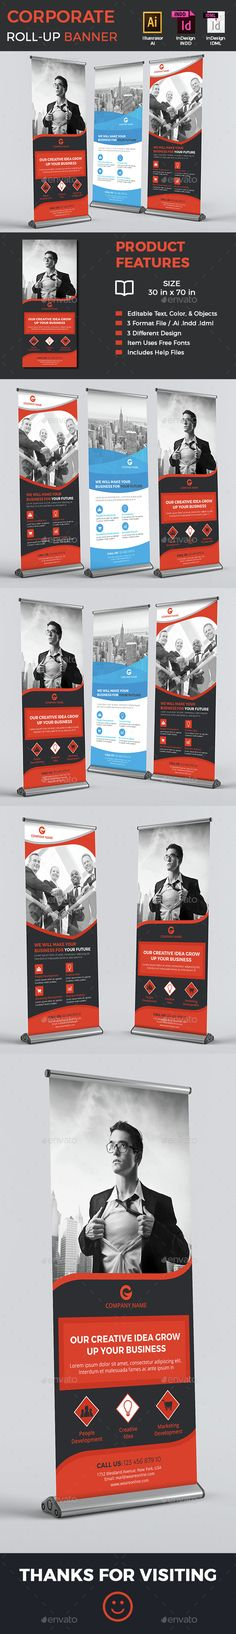 Corporate Rollup Banners — InDesign INDD #ad #banner template • Available here → https://graphicriver.net/item/corporate-rollup-banners/14843755?ref=pxcr